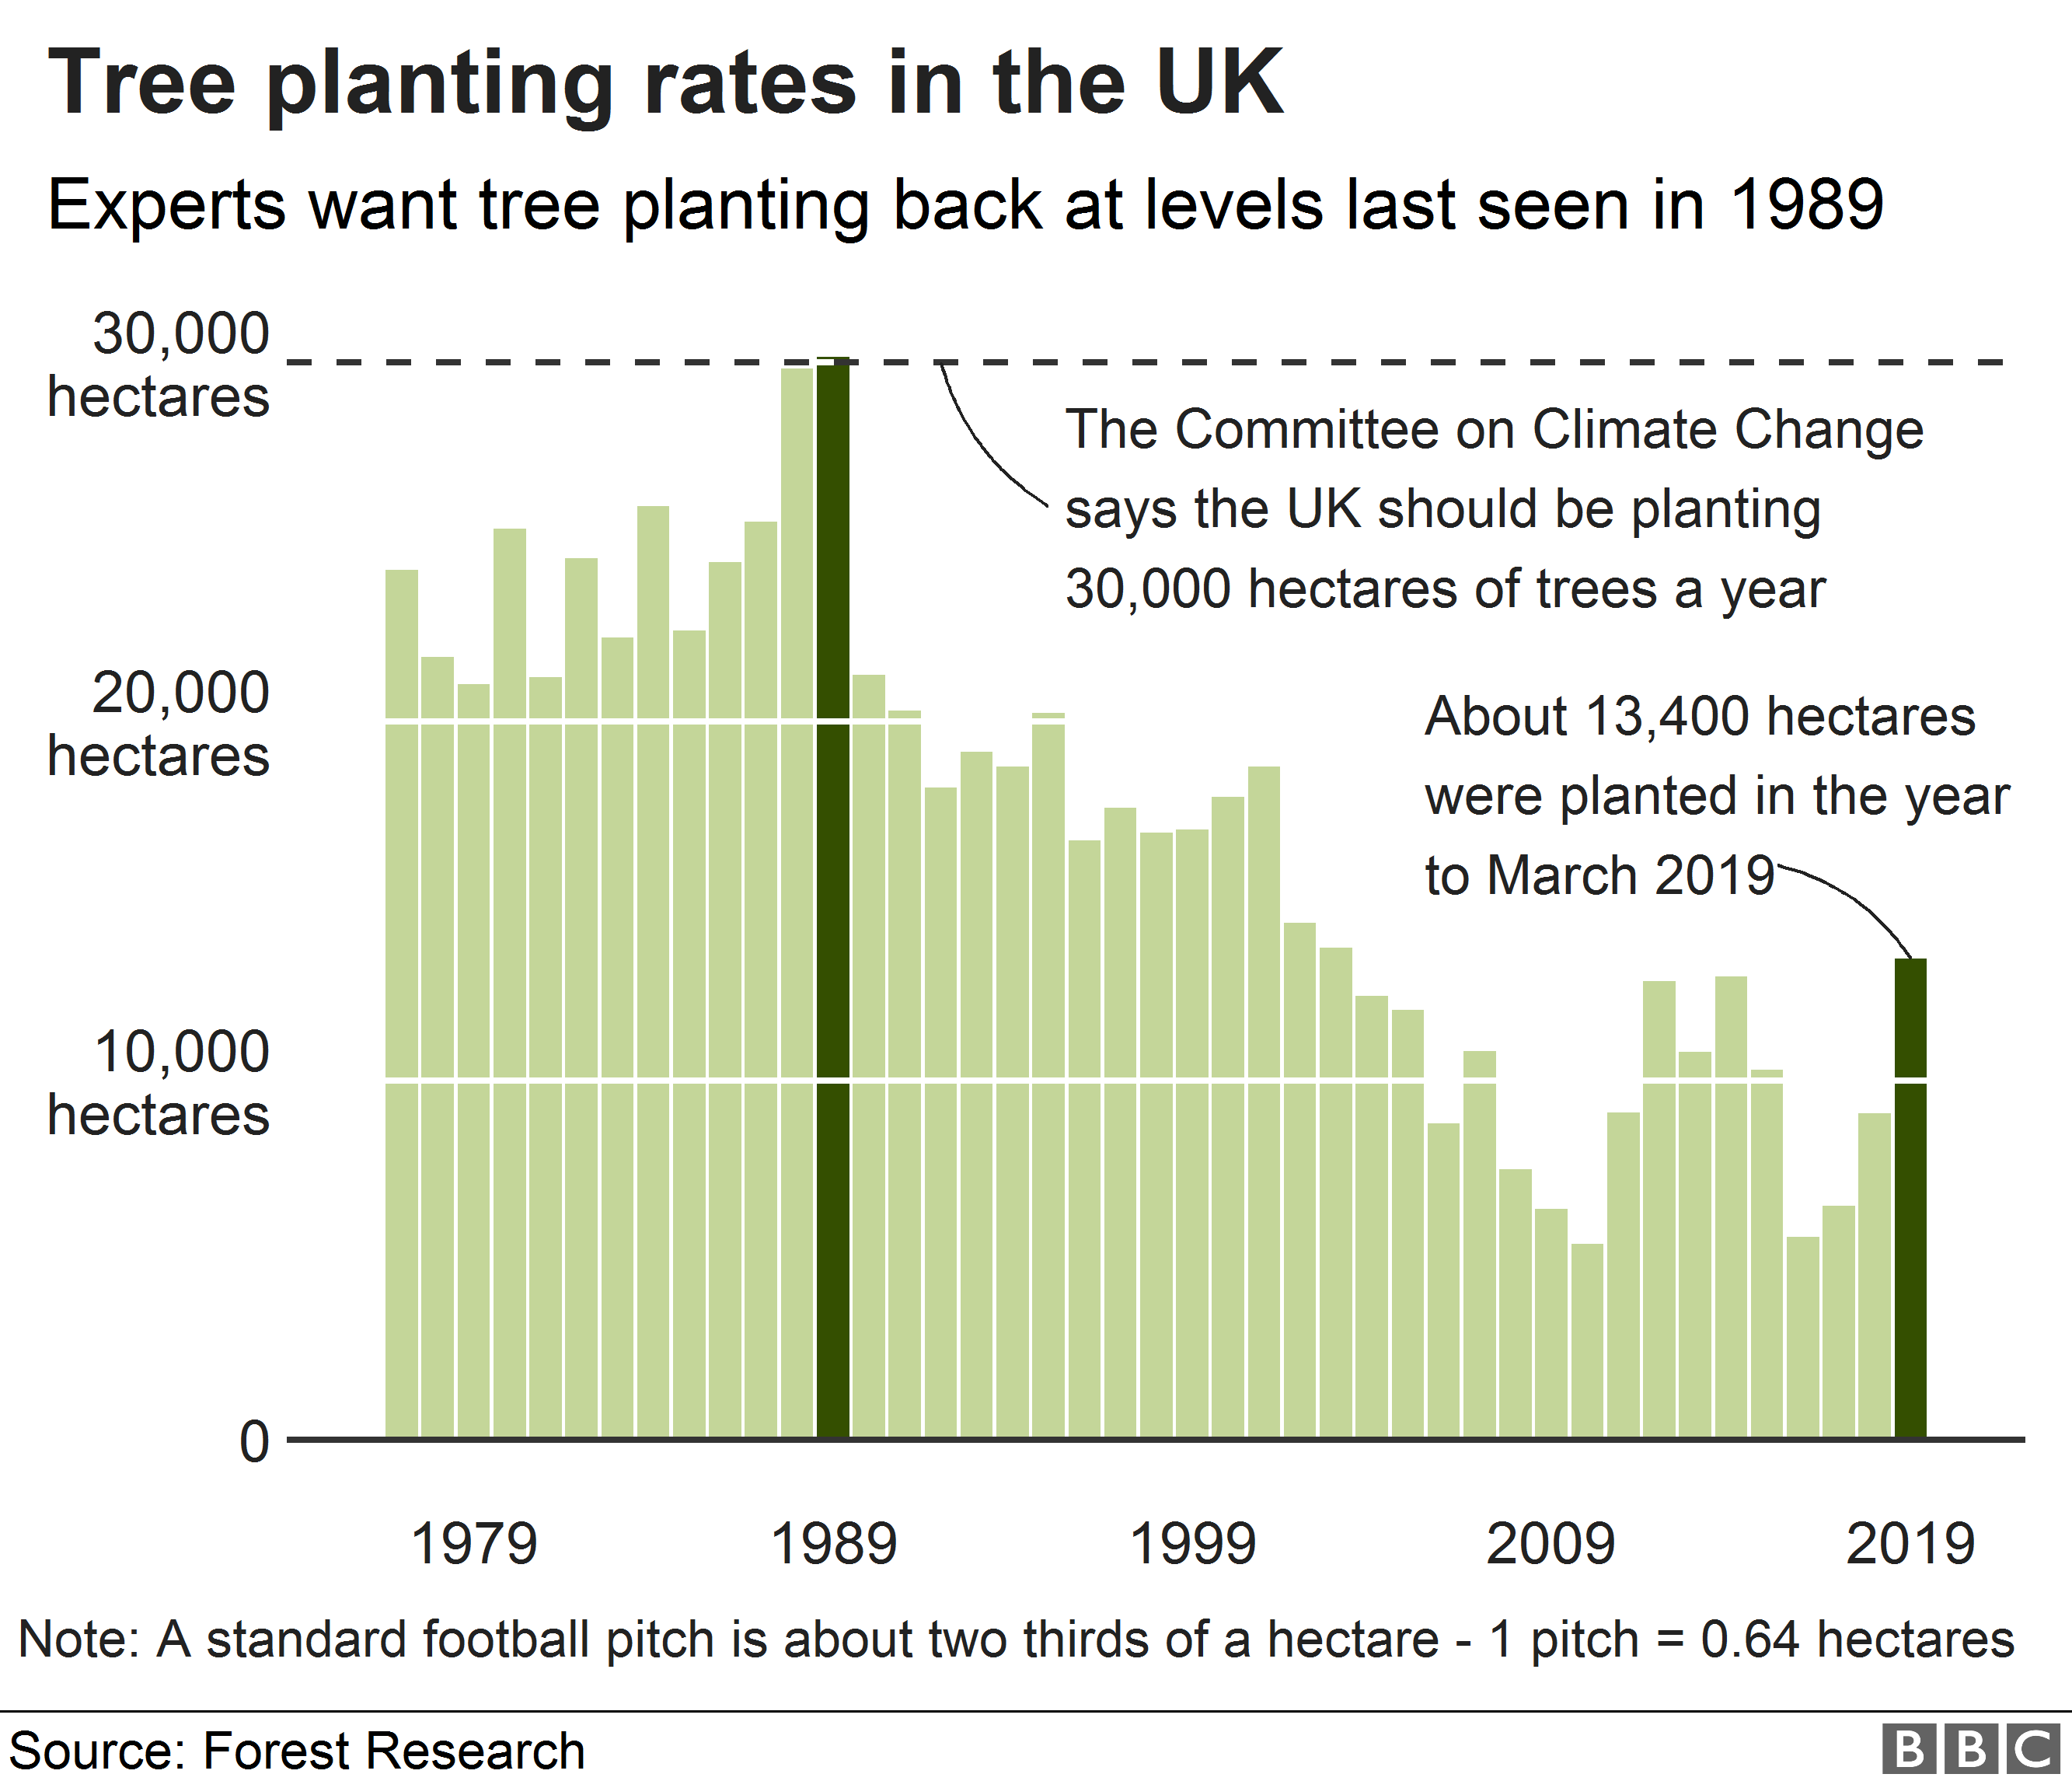 Chart showing planting rates in the UK